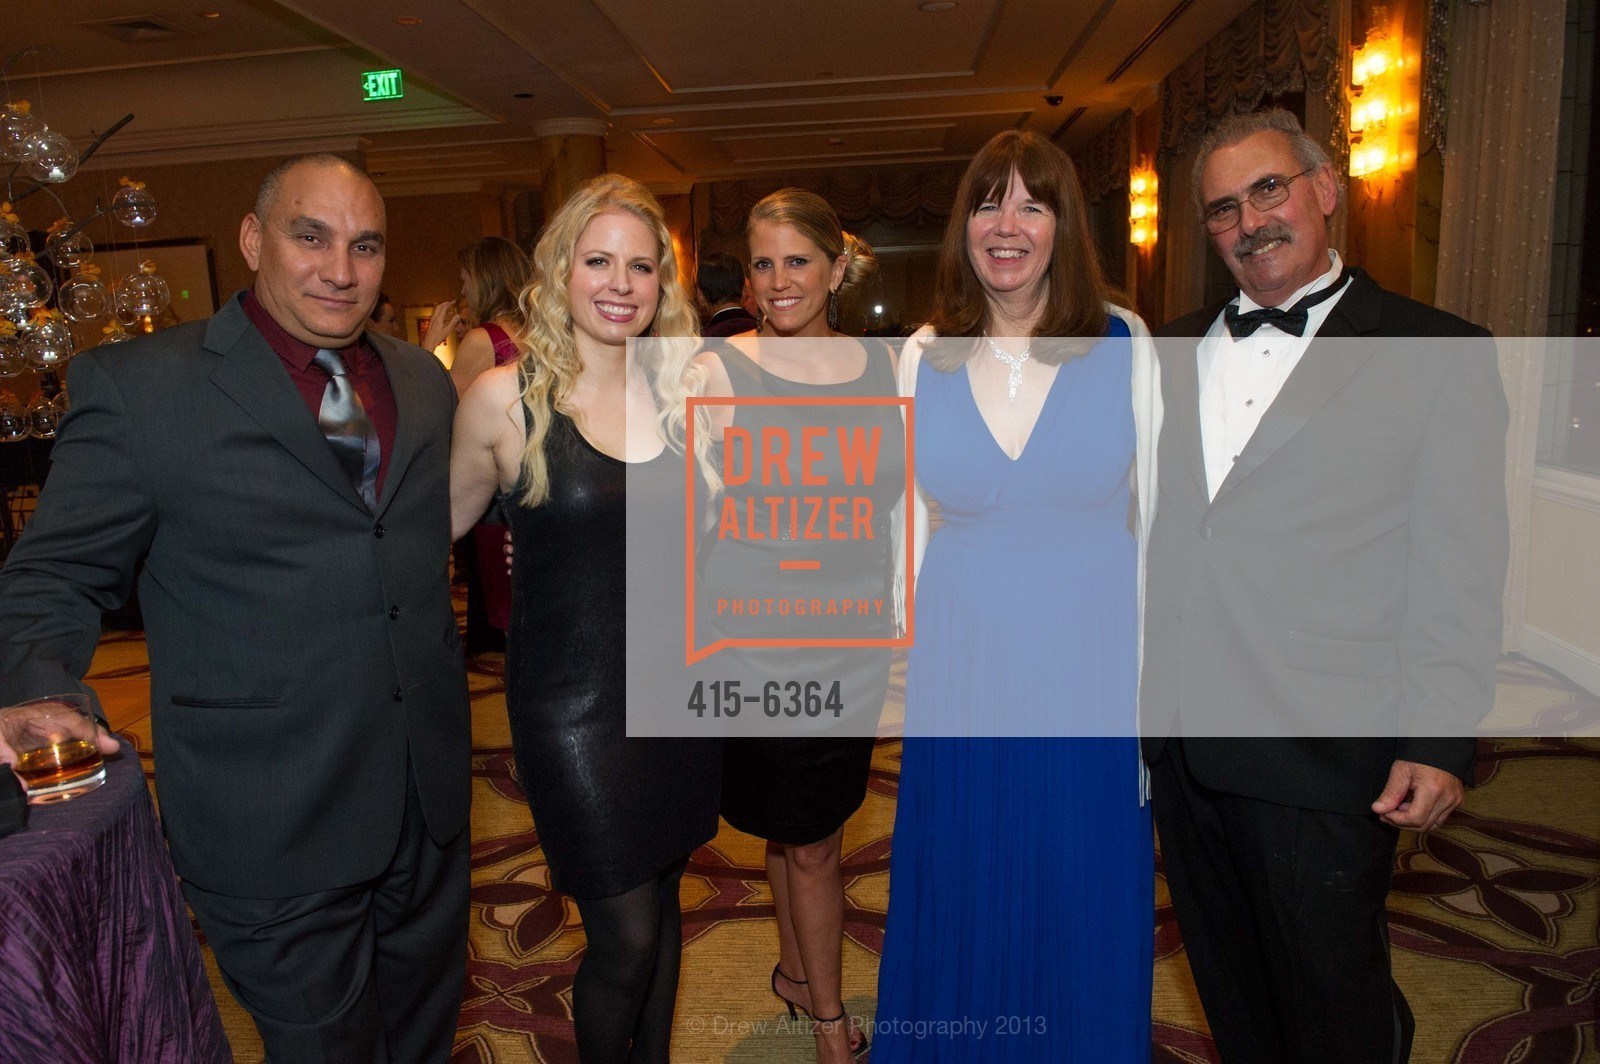 Nabil Khattar, Jennifer Khattar, Sue Nissum, 25th Anniversary Holiday HOB NOB ON THE HILL, US, December 6th, 2013,Drew Altizer, Drew Altizer Photography, full-service agency, private events, San Francisco photographer, photographer california